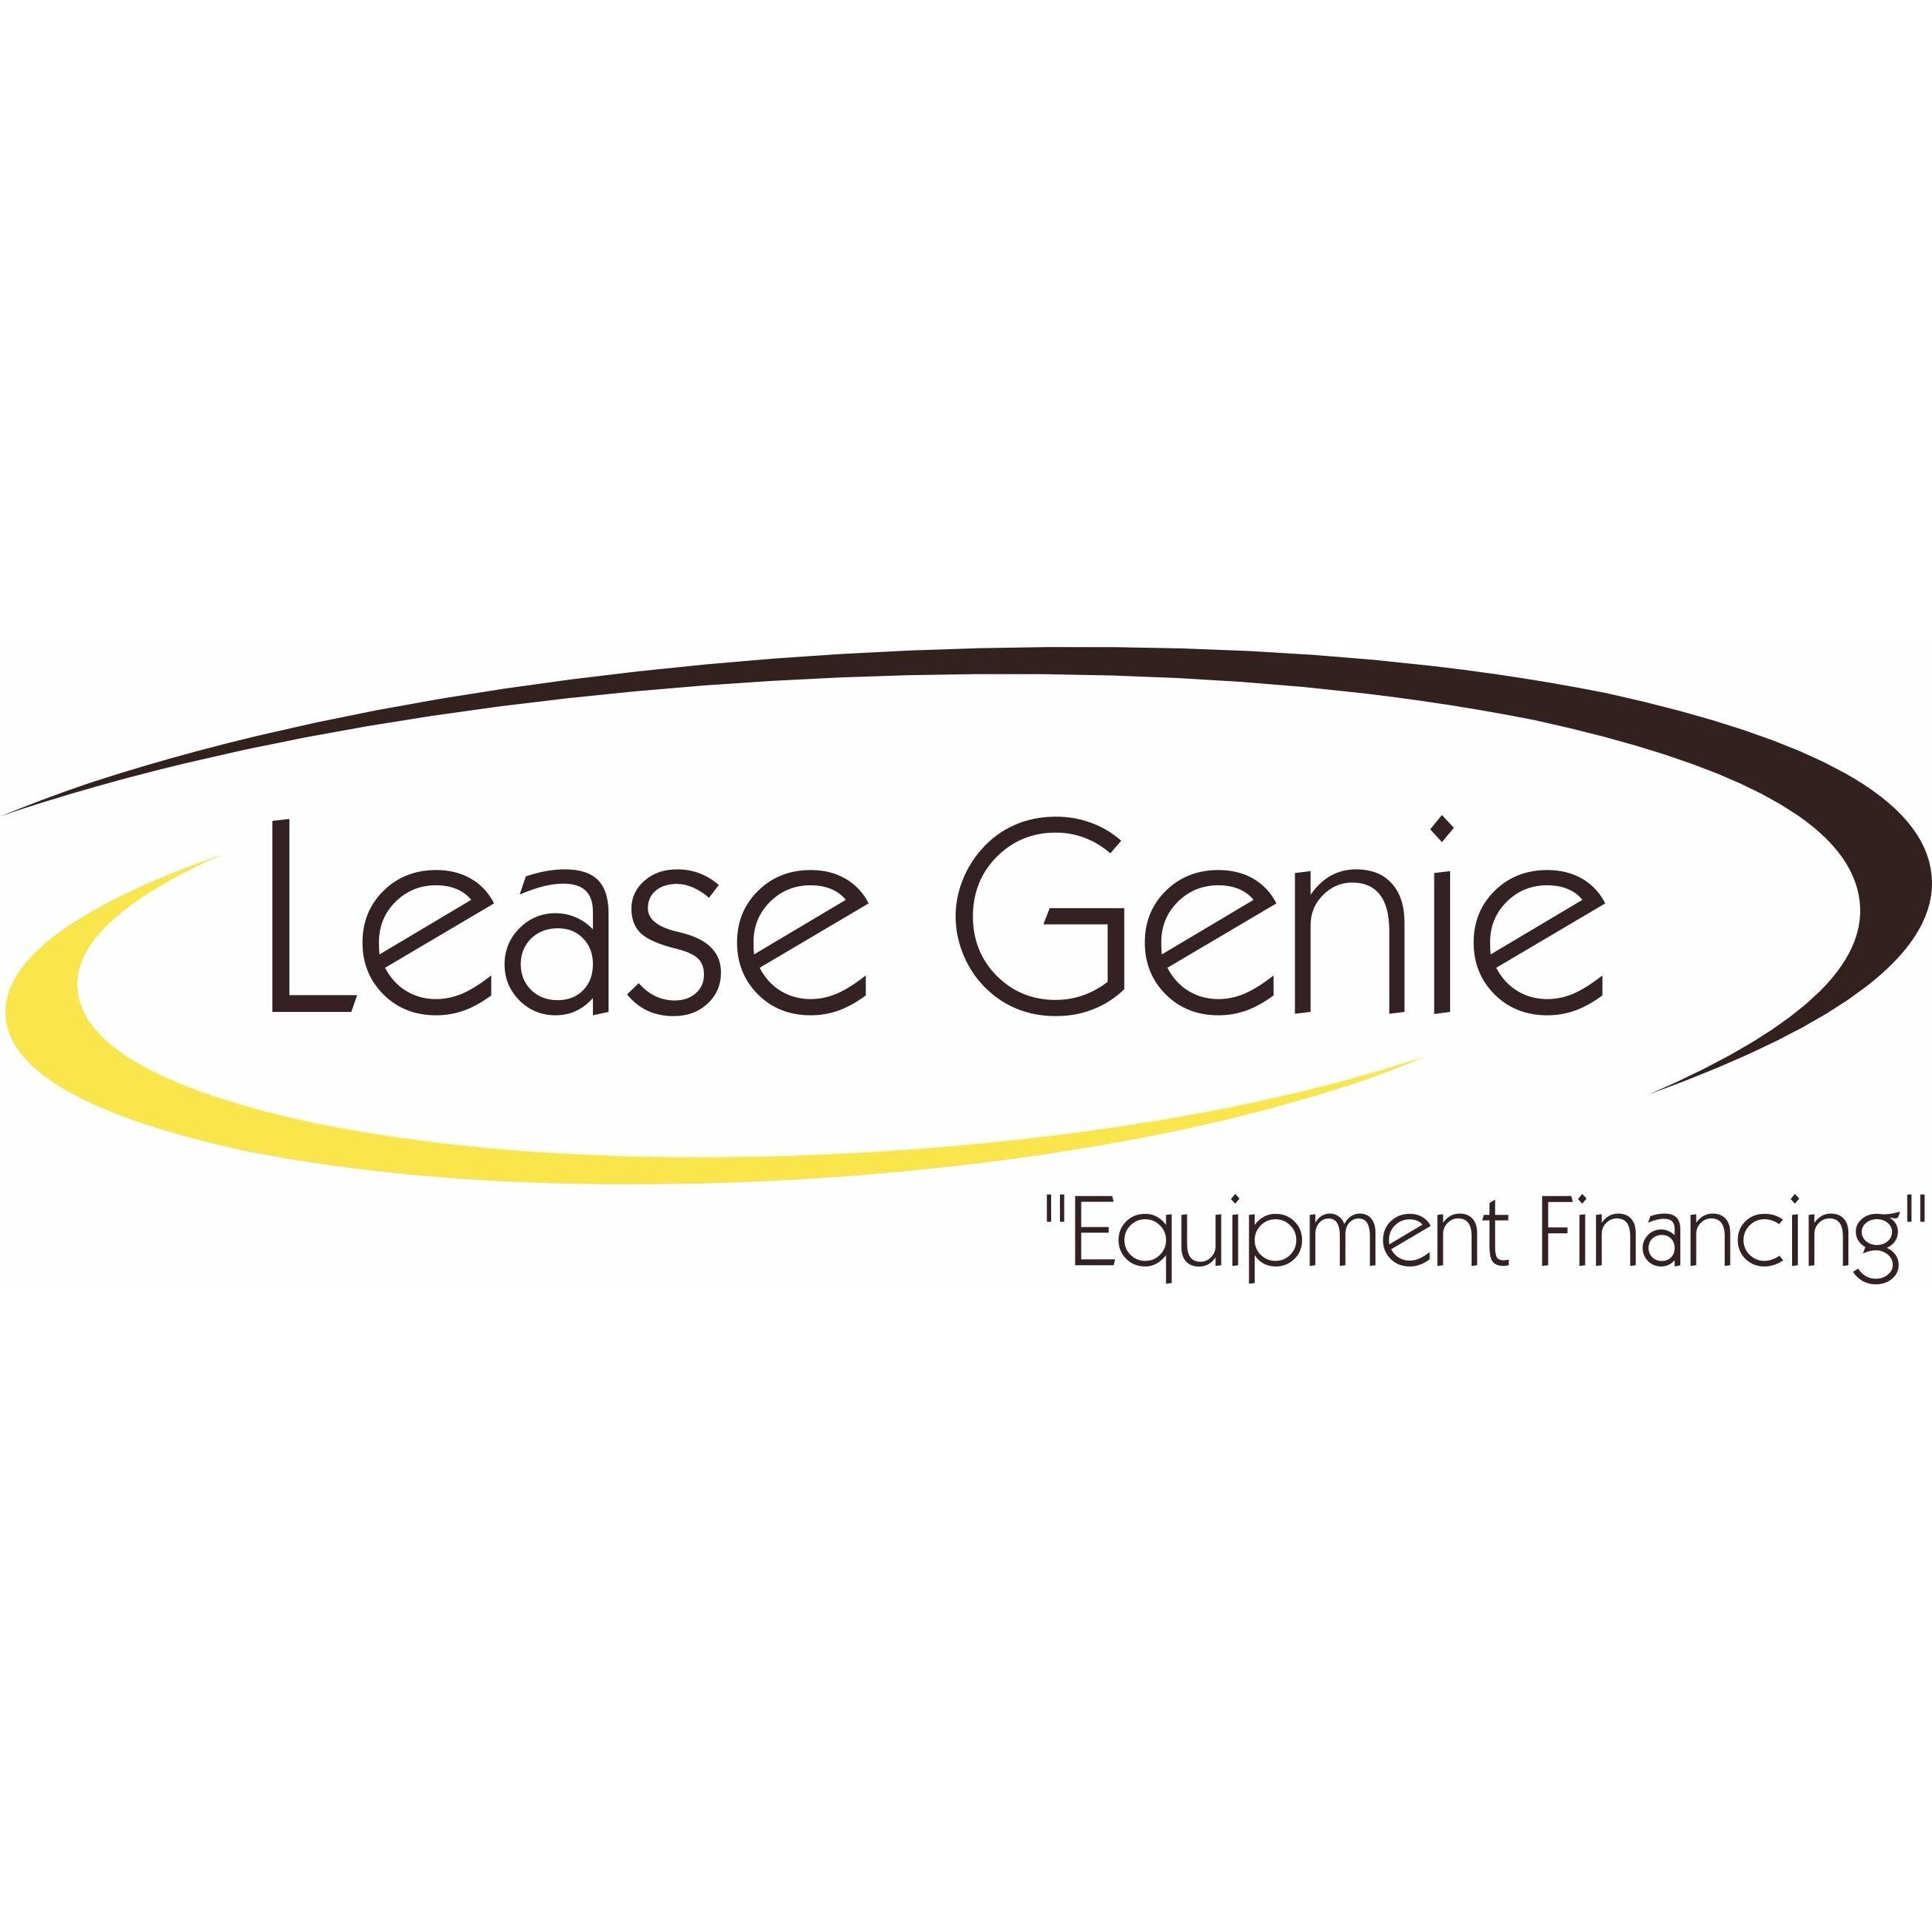 image of the Lease Genie